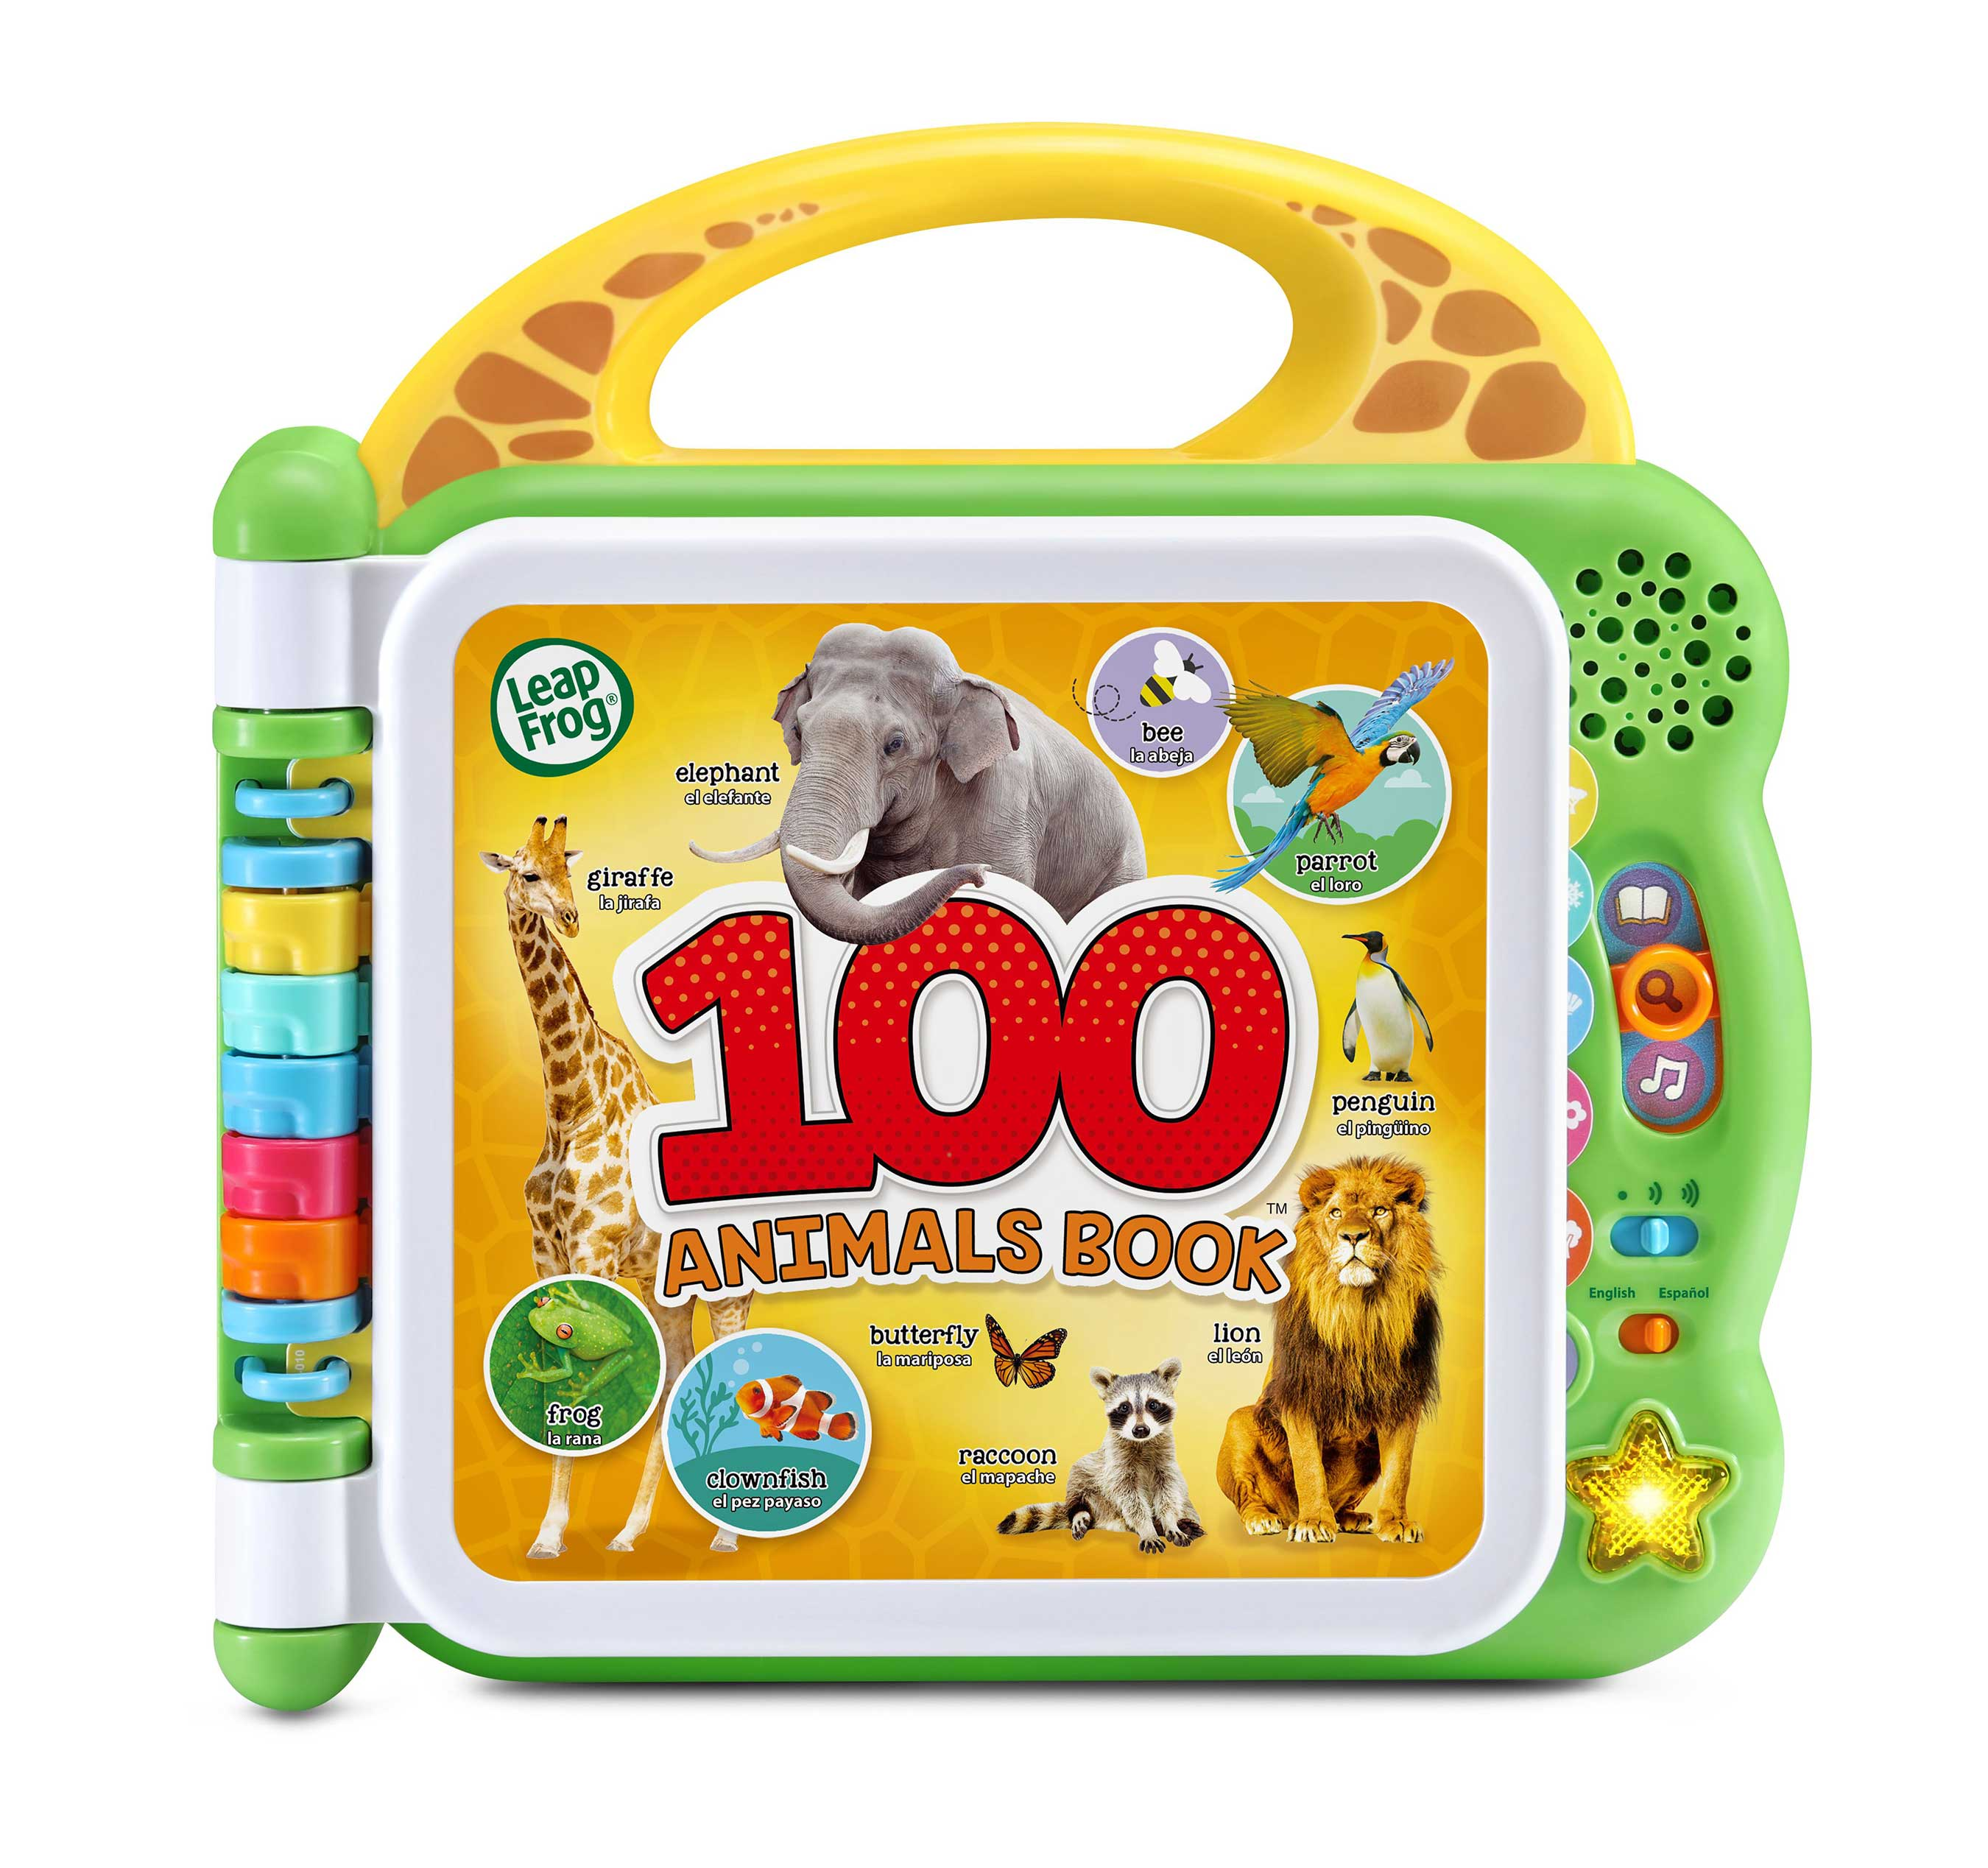 LeapFrog® Introduces New Infant and Preschool Learning Toys